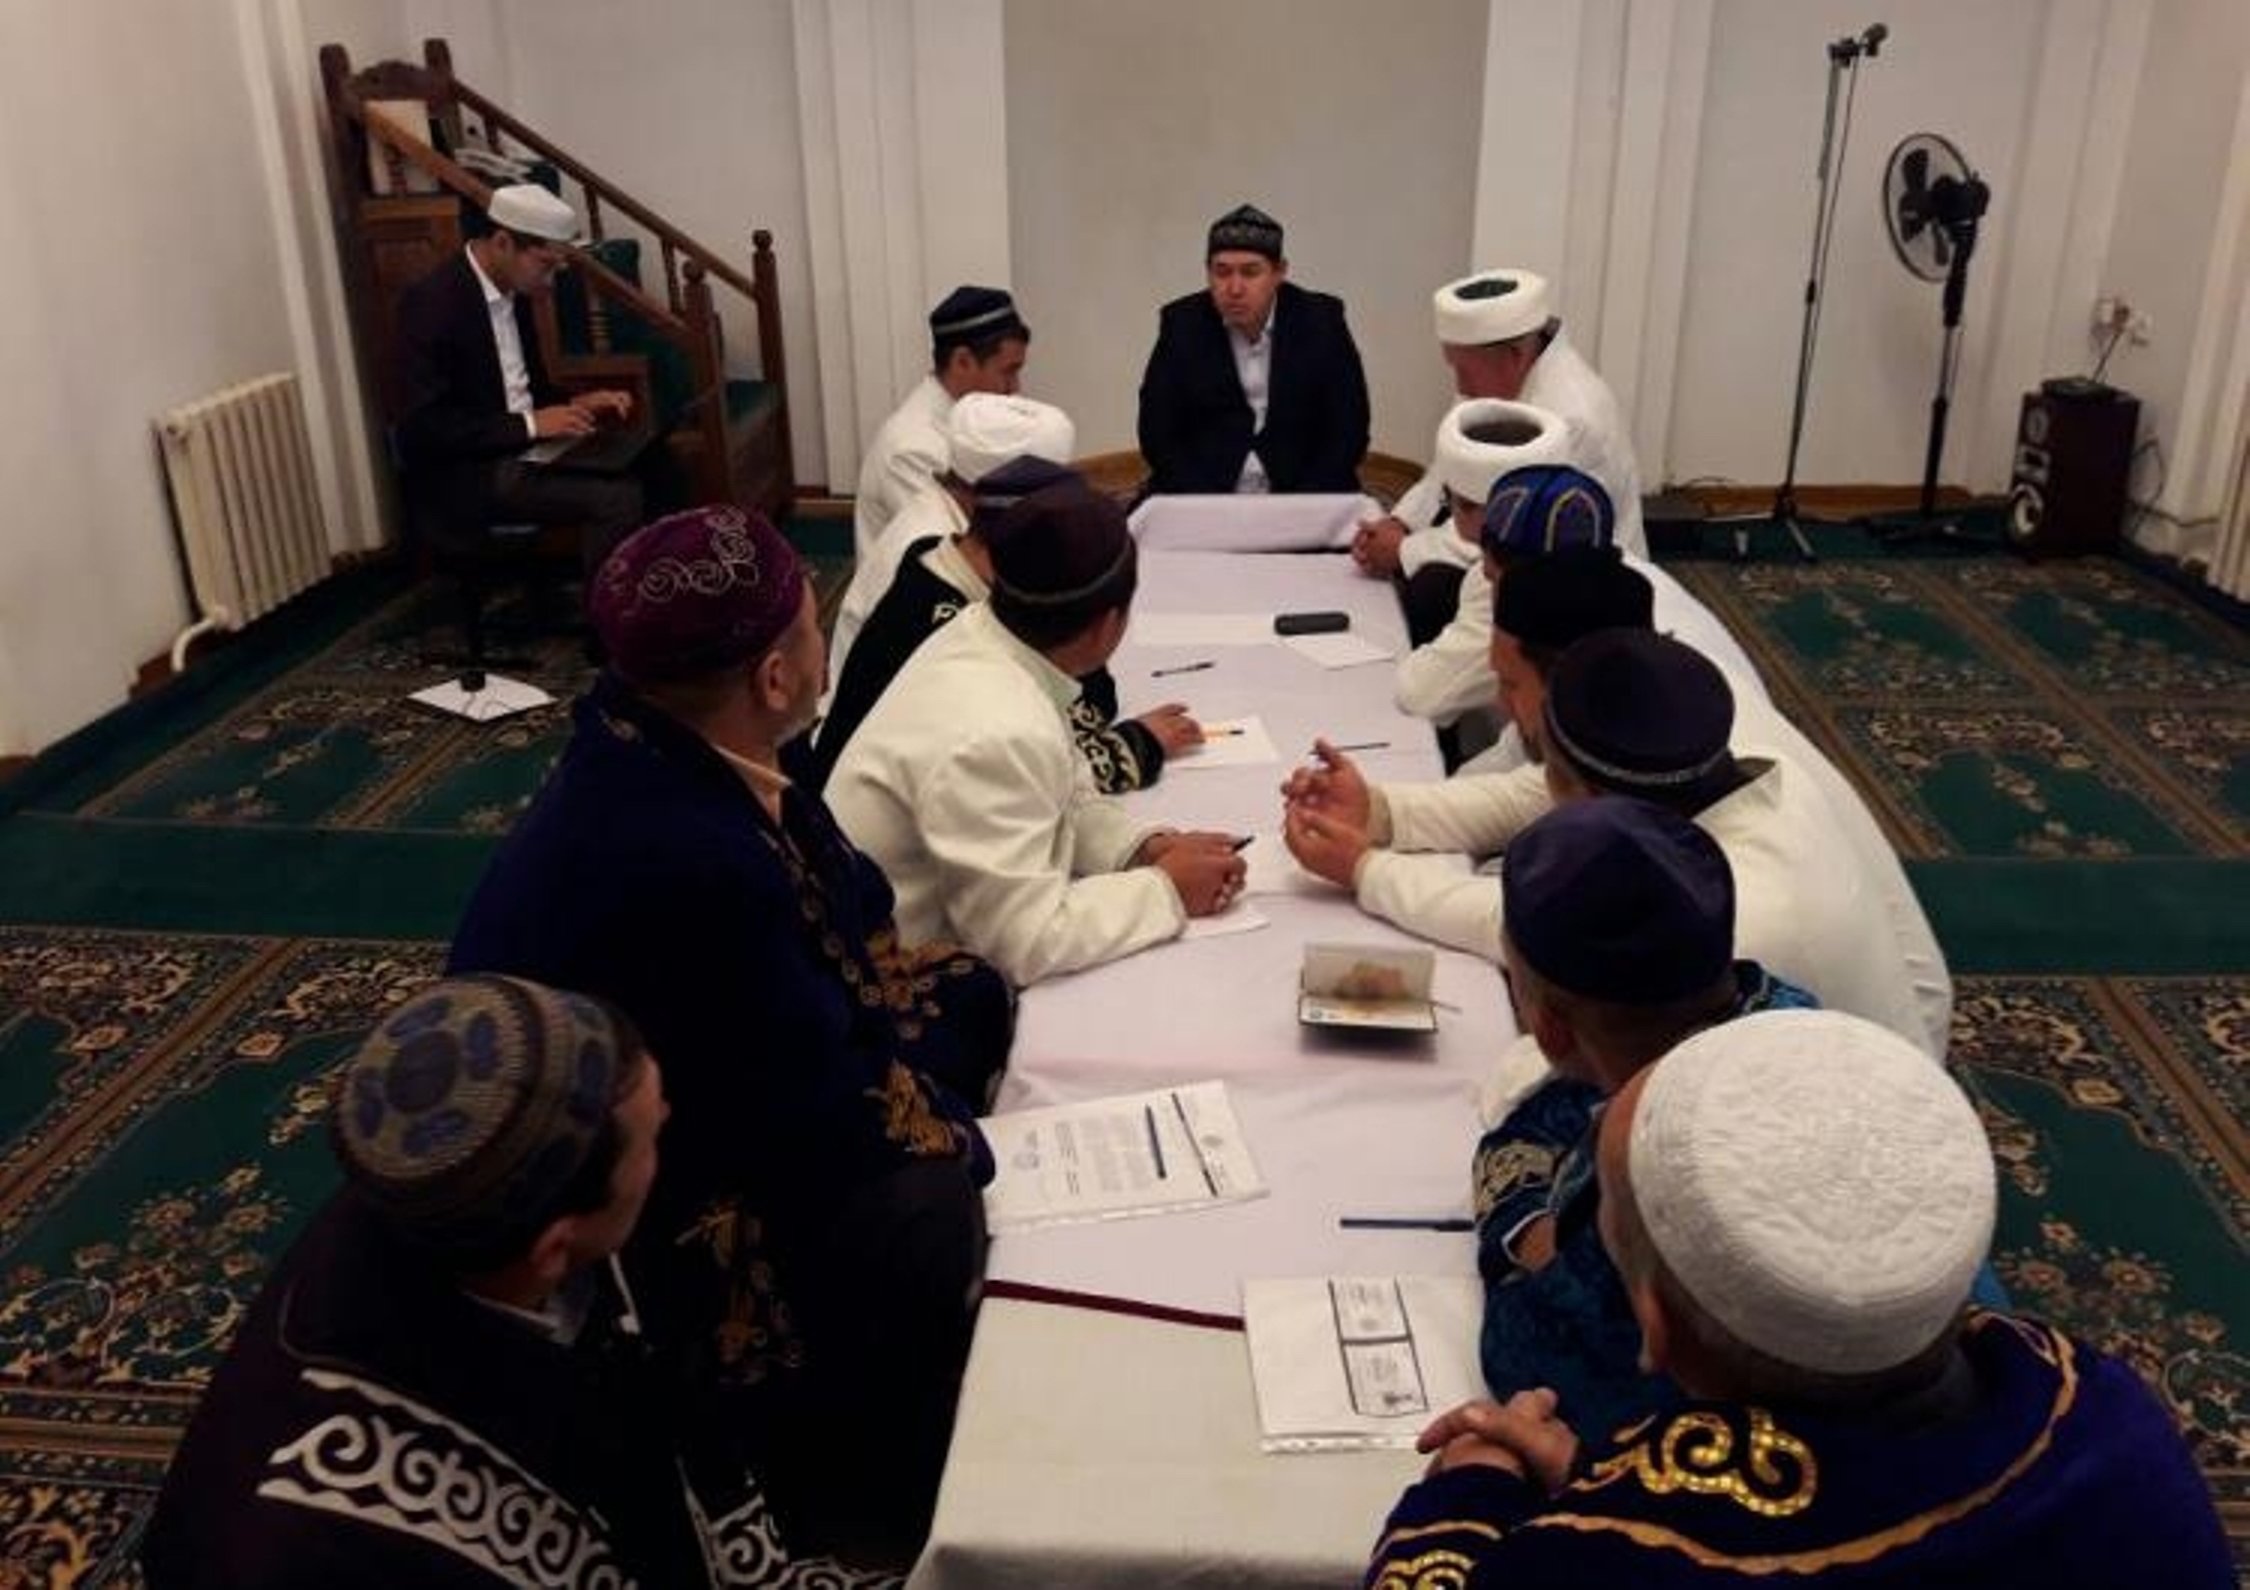 Kazakhstani religious agencies battle extremism together